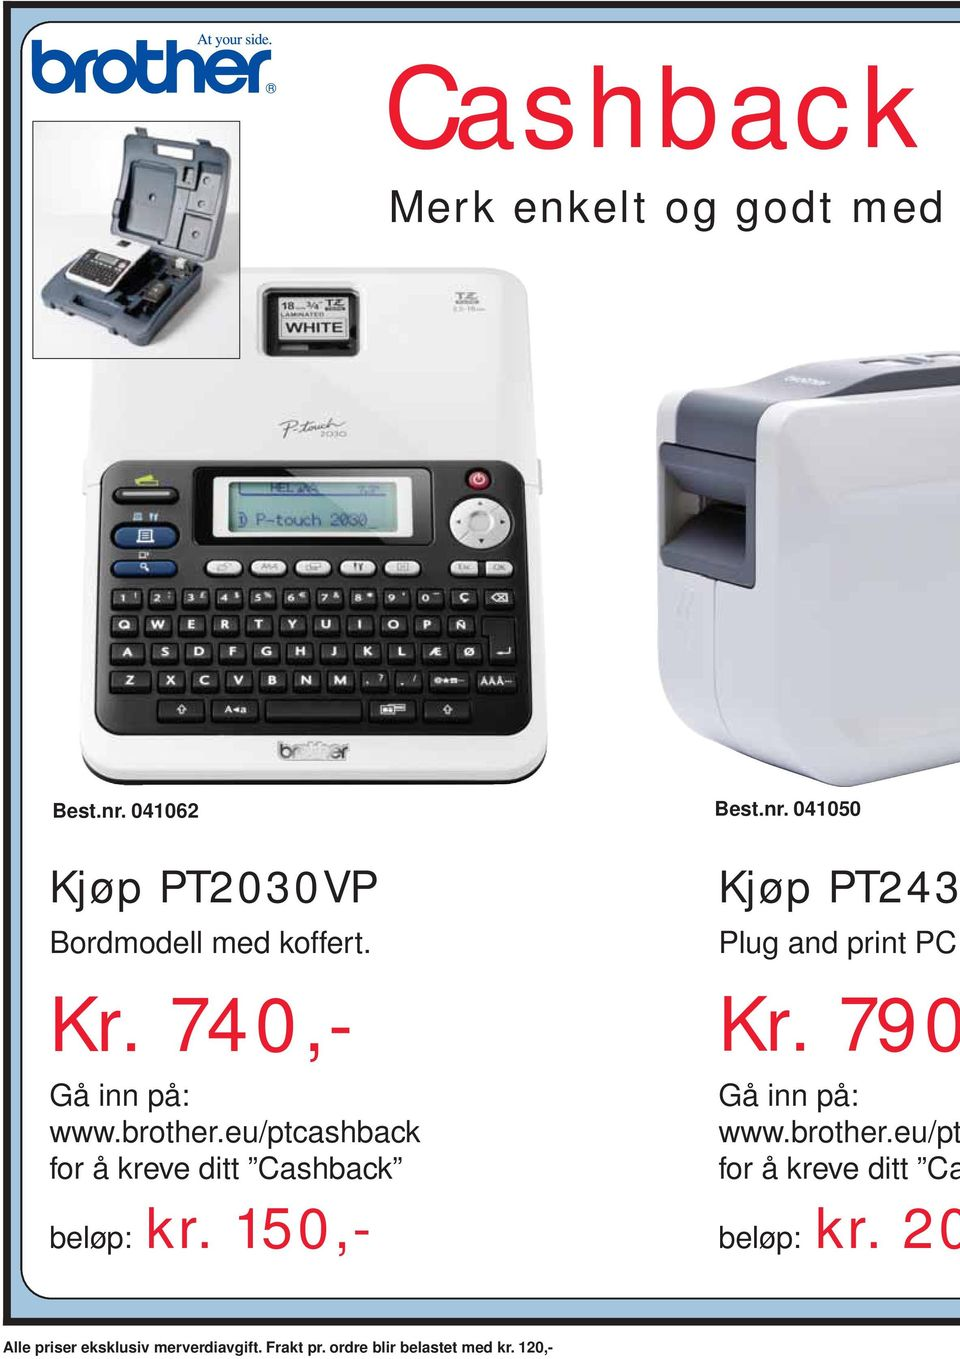 150,- Kjøp PT243 Plug and print PC Kr. 790 Gå inn på: www.brother.